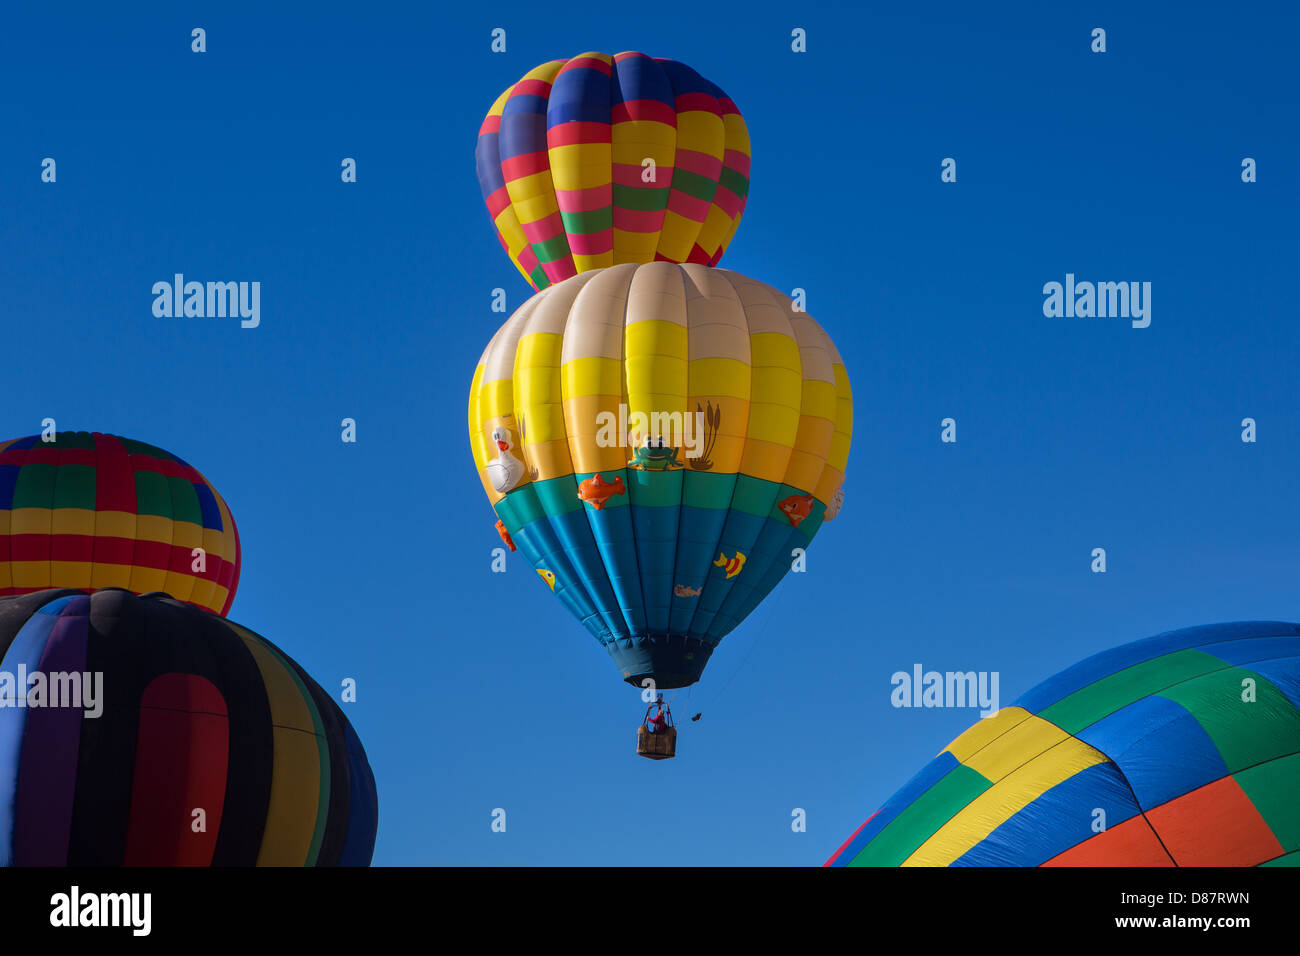 Hot air balloons, Gallup, New Mexico - Stock Image